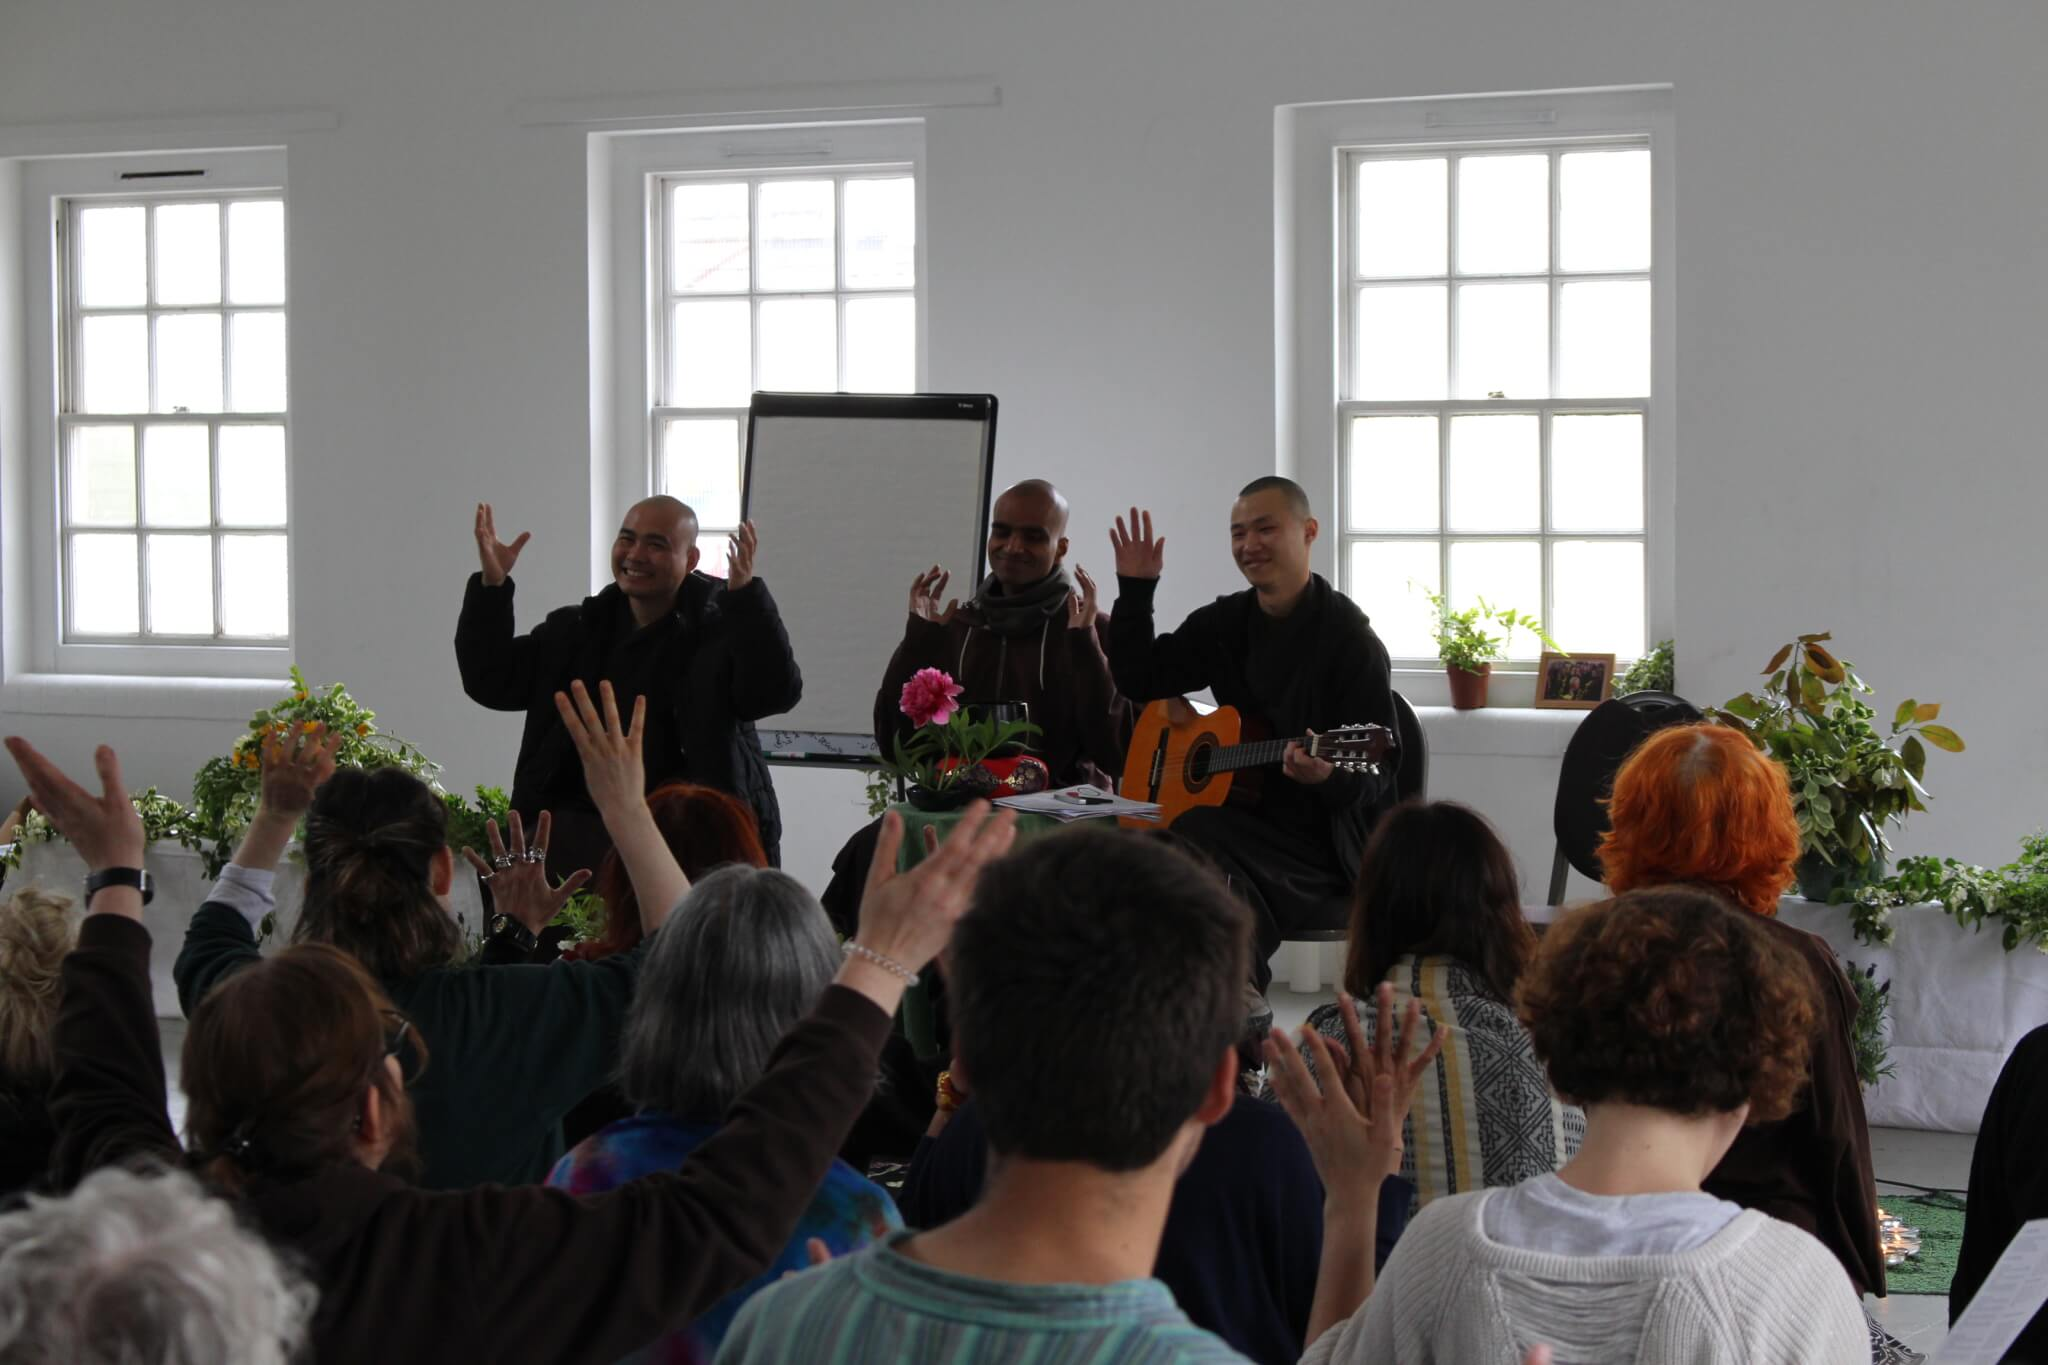 Monastic and practitioners at London hub